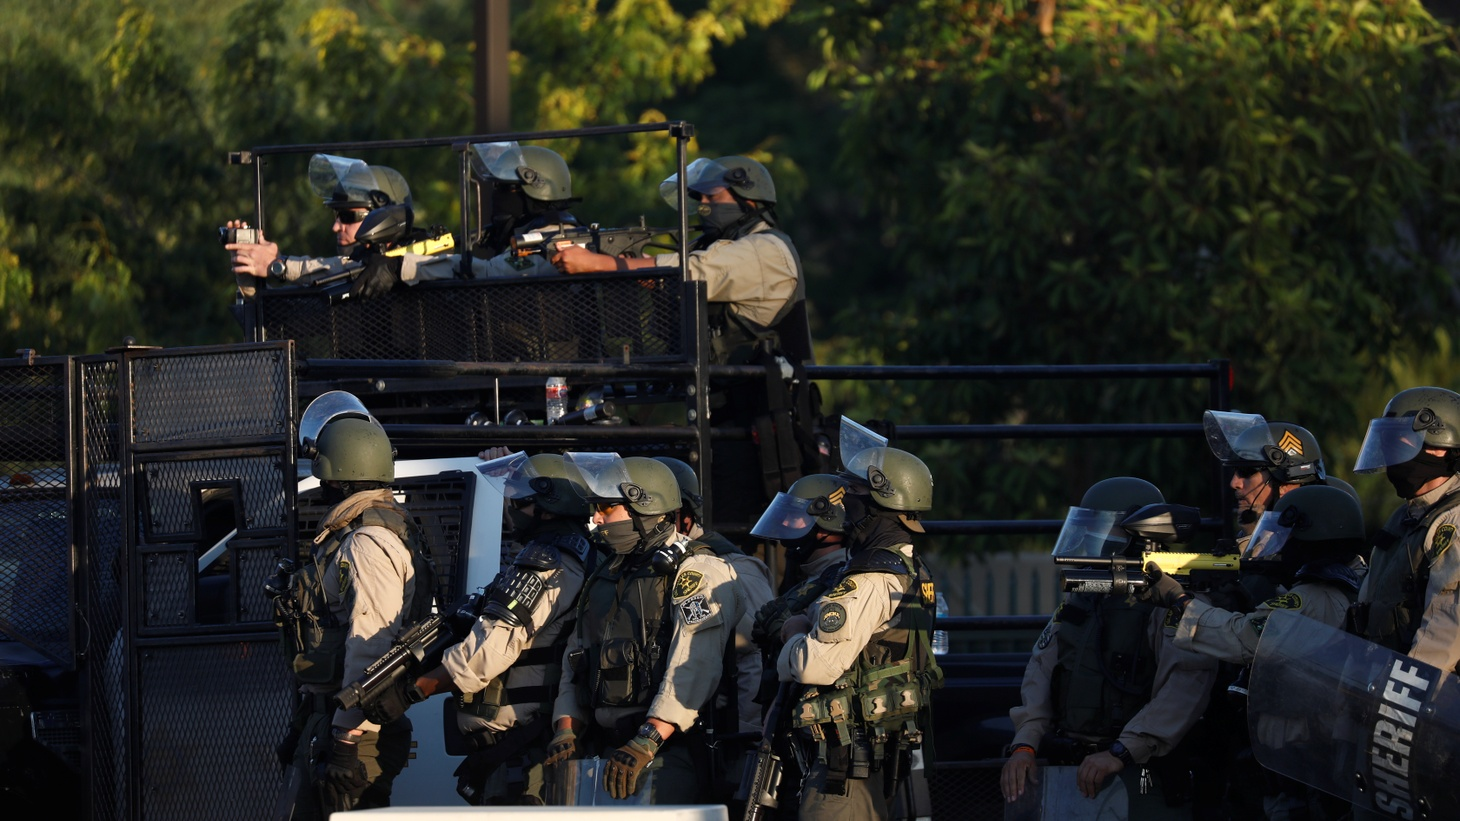 Law enforcement personnel wearing riot gear watch as demonstrators protest against the shooting of Dijon Kizzee by Los Angeles sheriff's deputies, outside the Los Angeles County Sheriff's department station in Los Angeles, California, U.S., September 1, 2020.